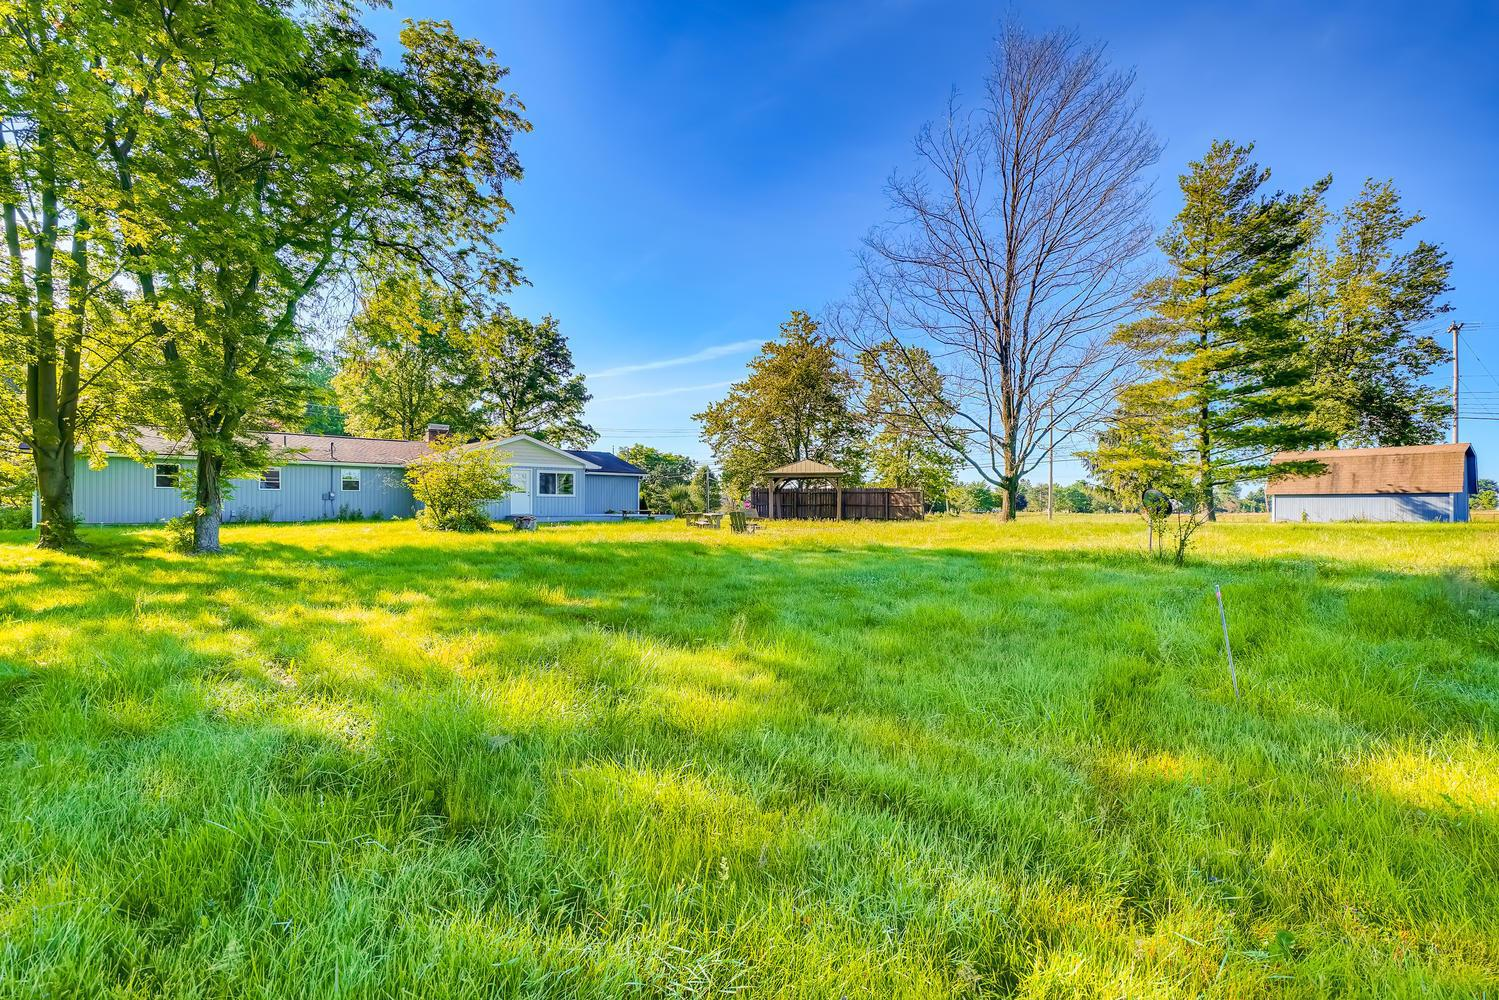 4324 Old State Road, Lewis Center, Ohio 43035, 3 Bedrooms Bedrooms, ,2 BathroomsBathrooms,Residential,For Sale,Old State,220020932